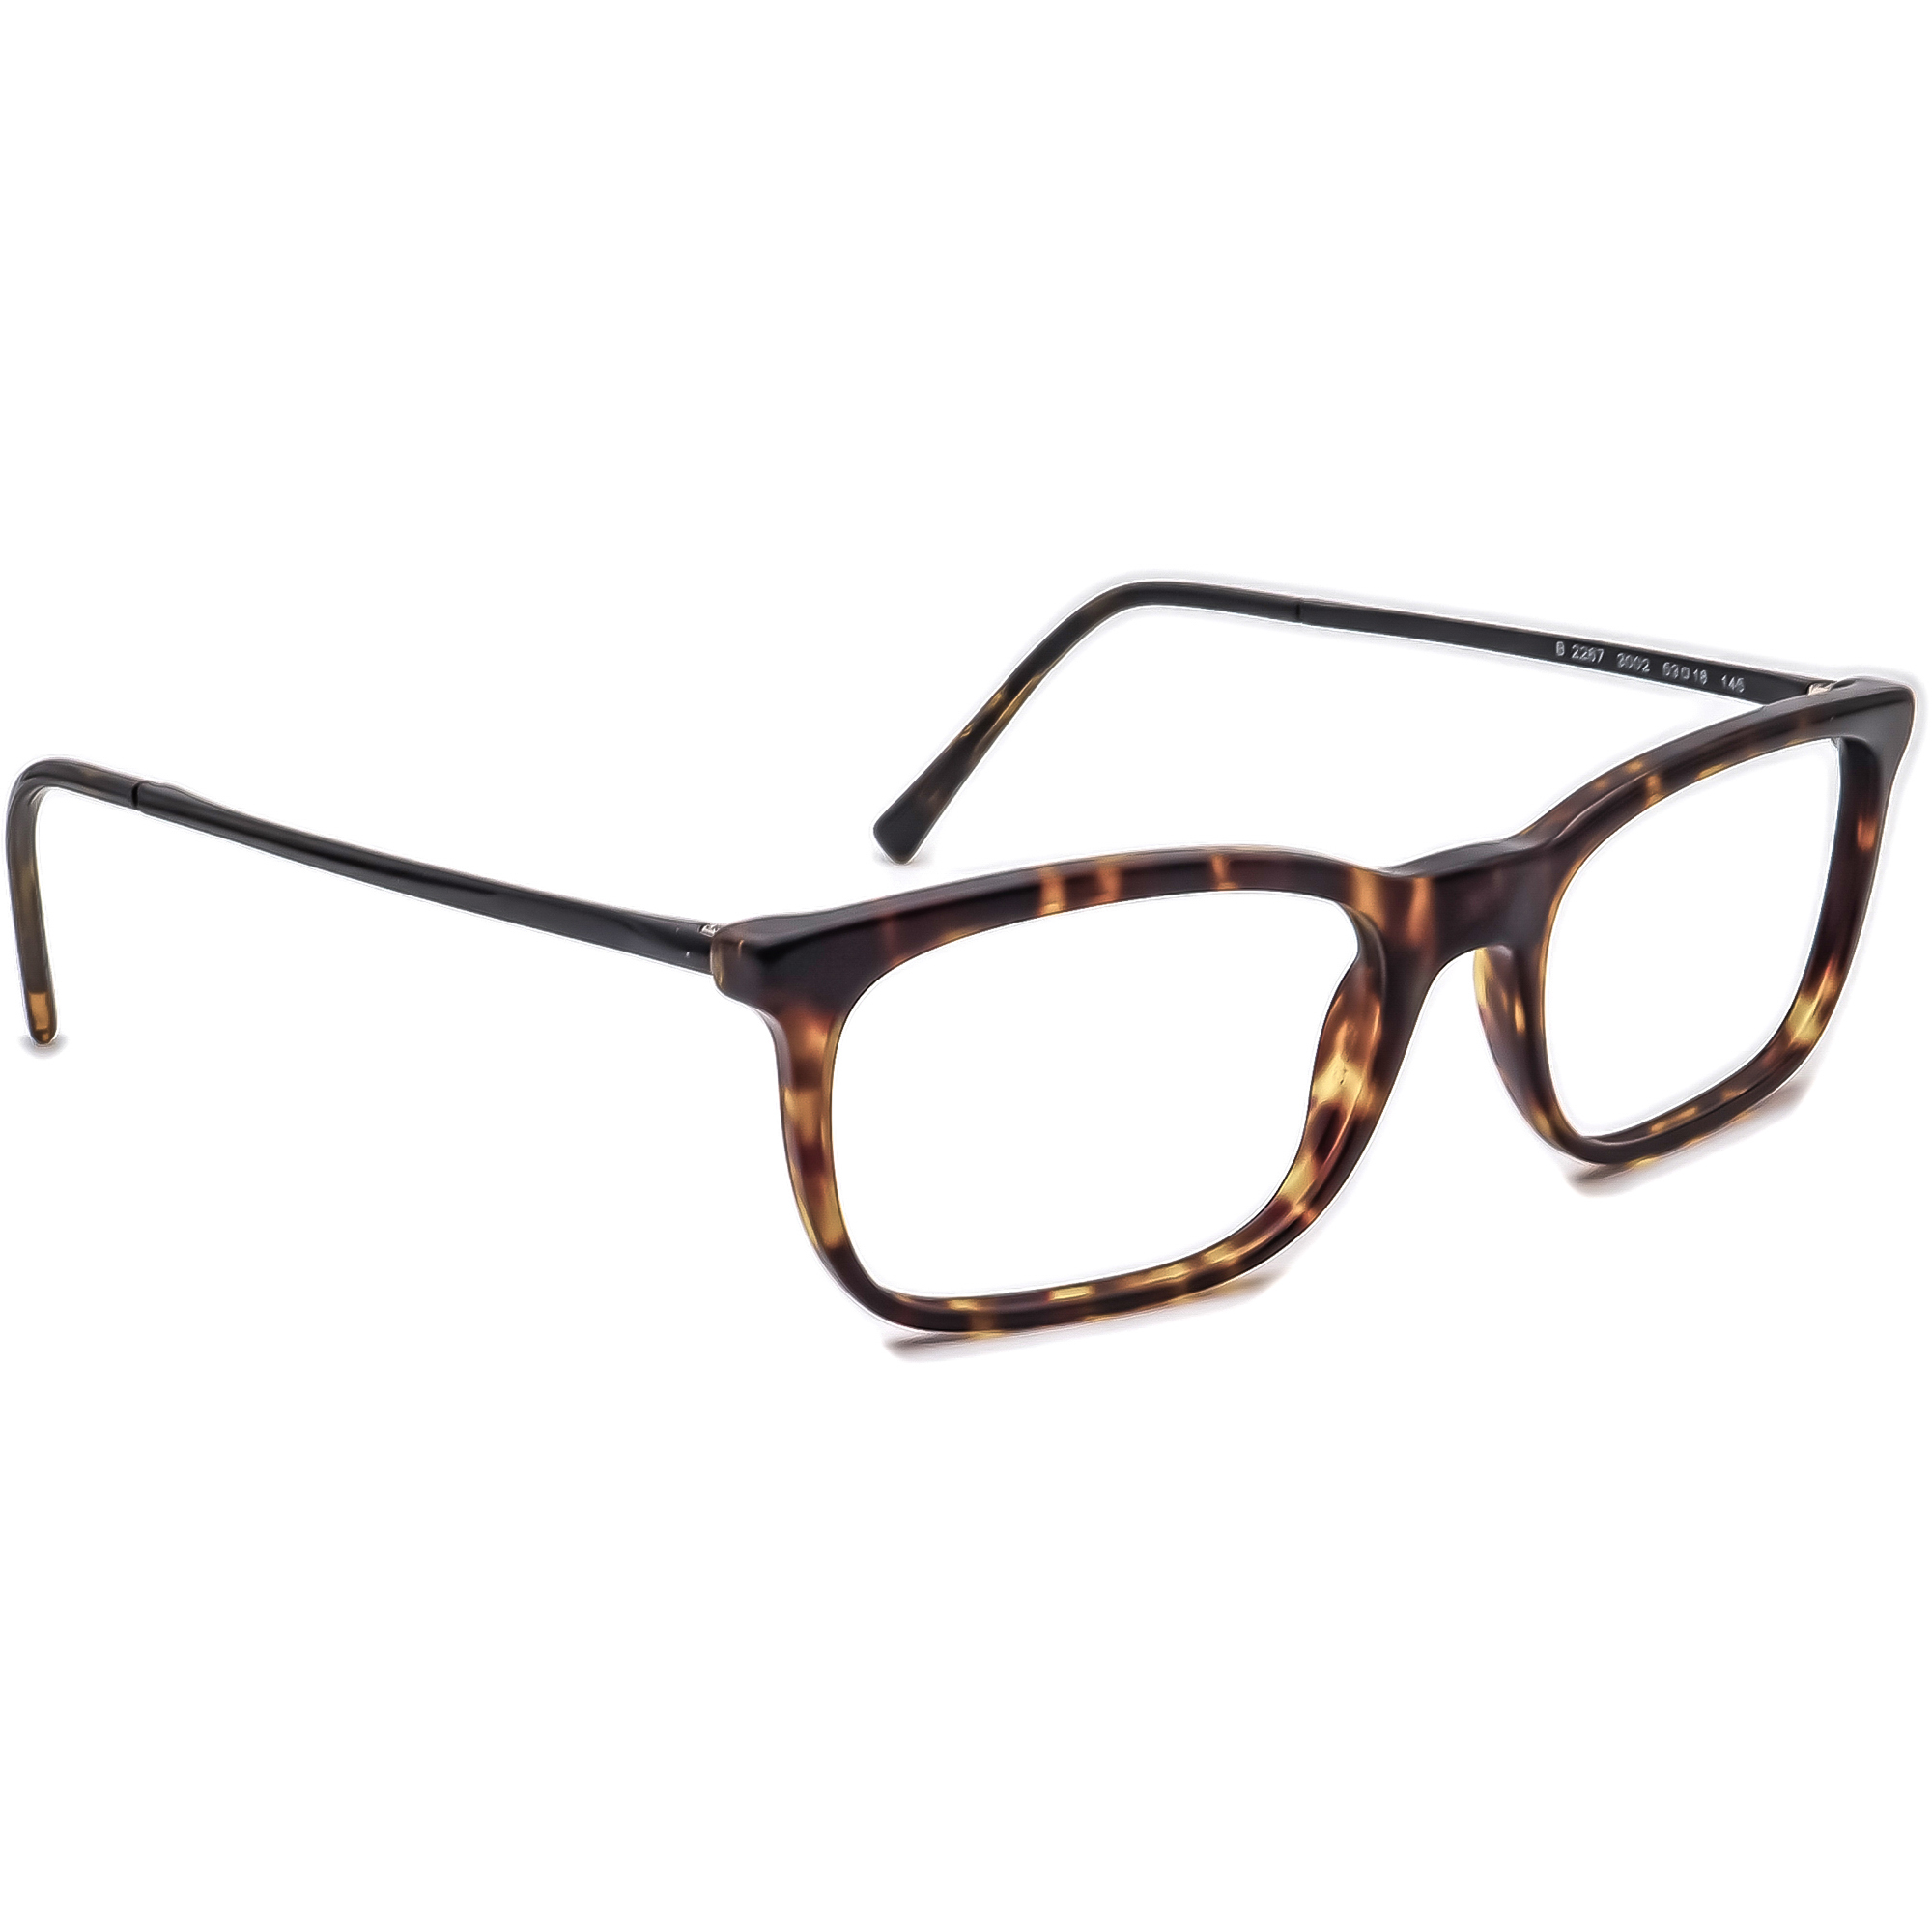 Burberry B 2267 3002 Eyeglasses